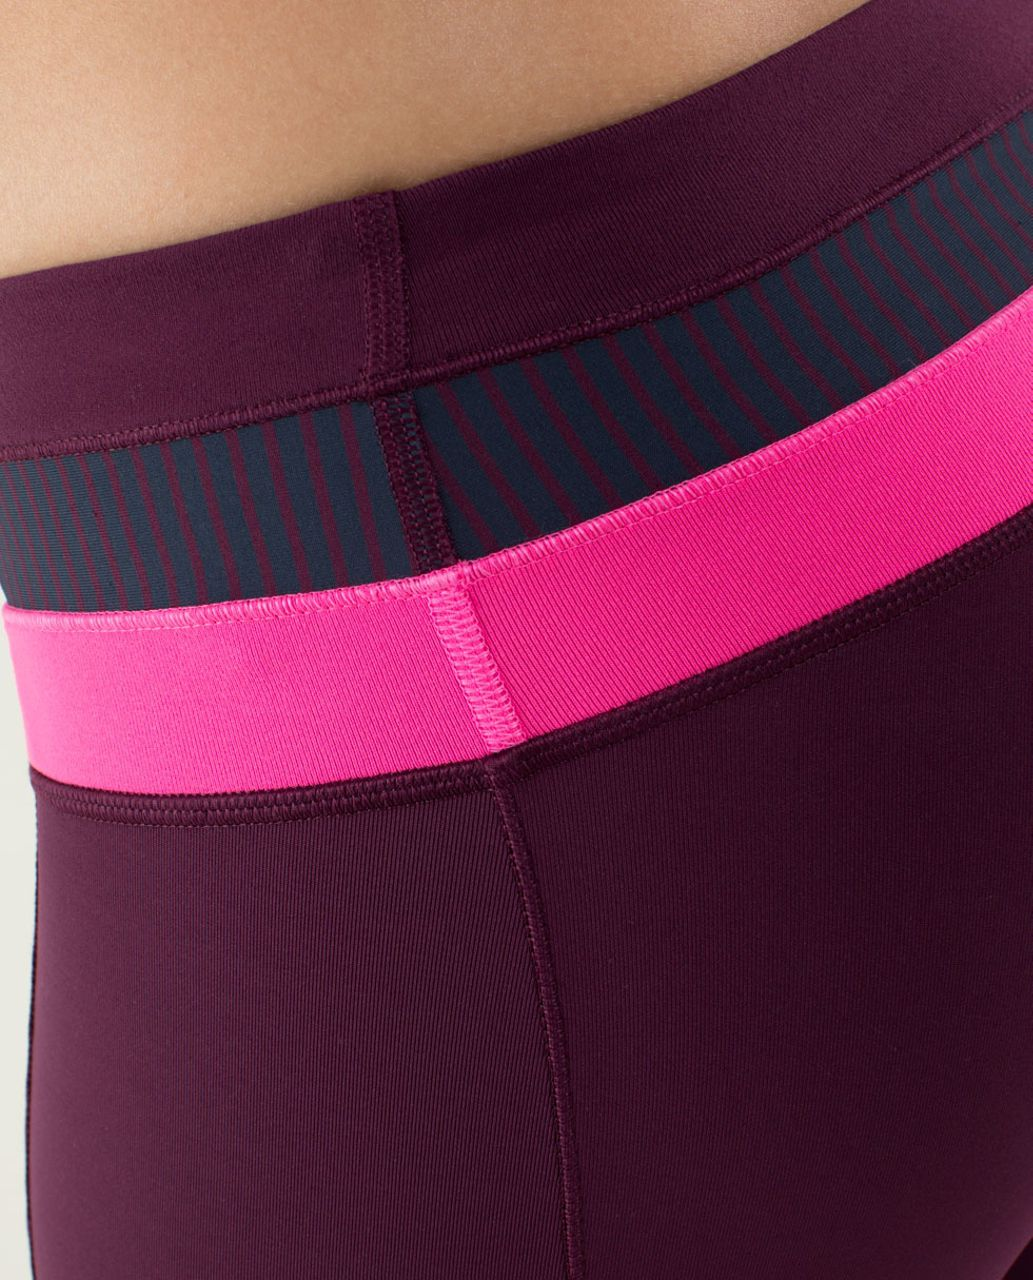 59a40ec60 Lululemon Give Me Qi Pant - Plum   Hyper Stripe Raspberry Glo Light    Raspberry Glo